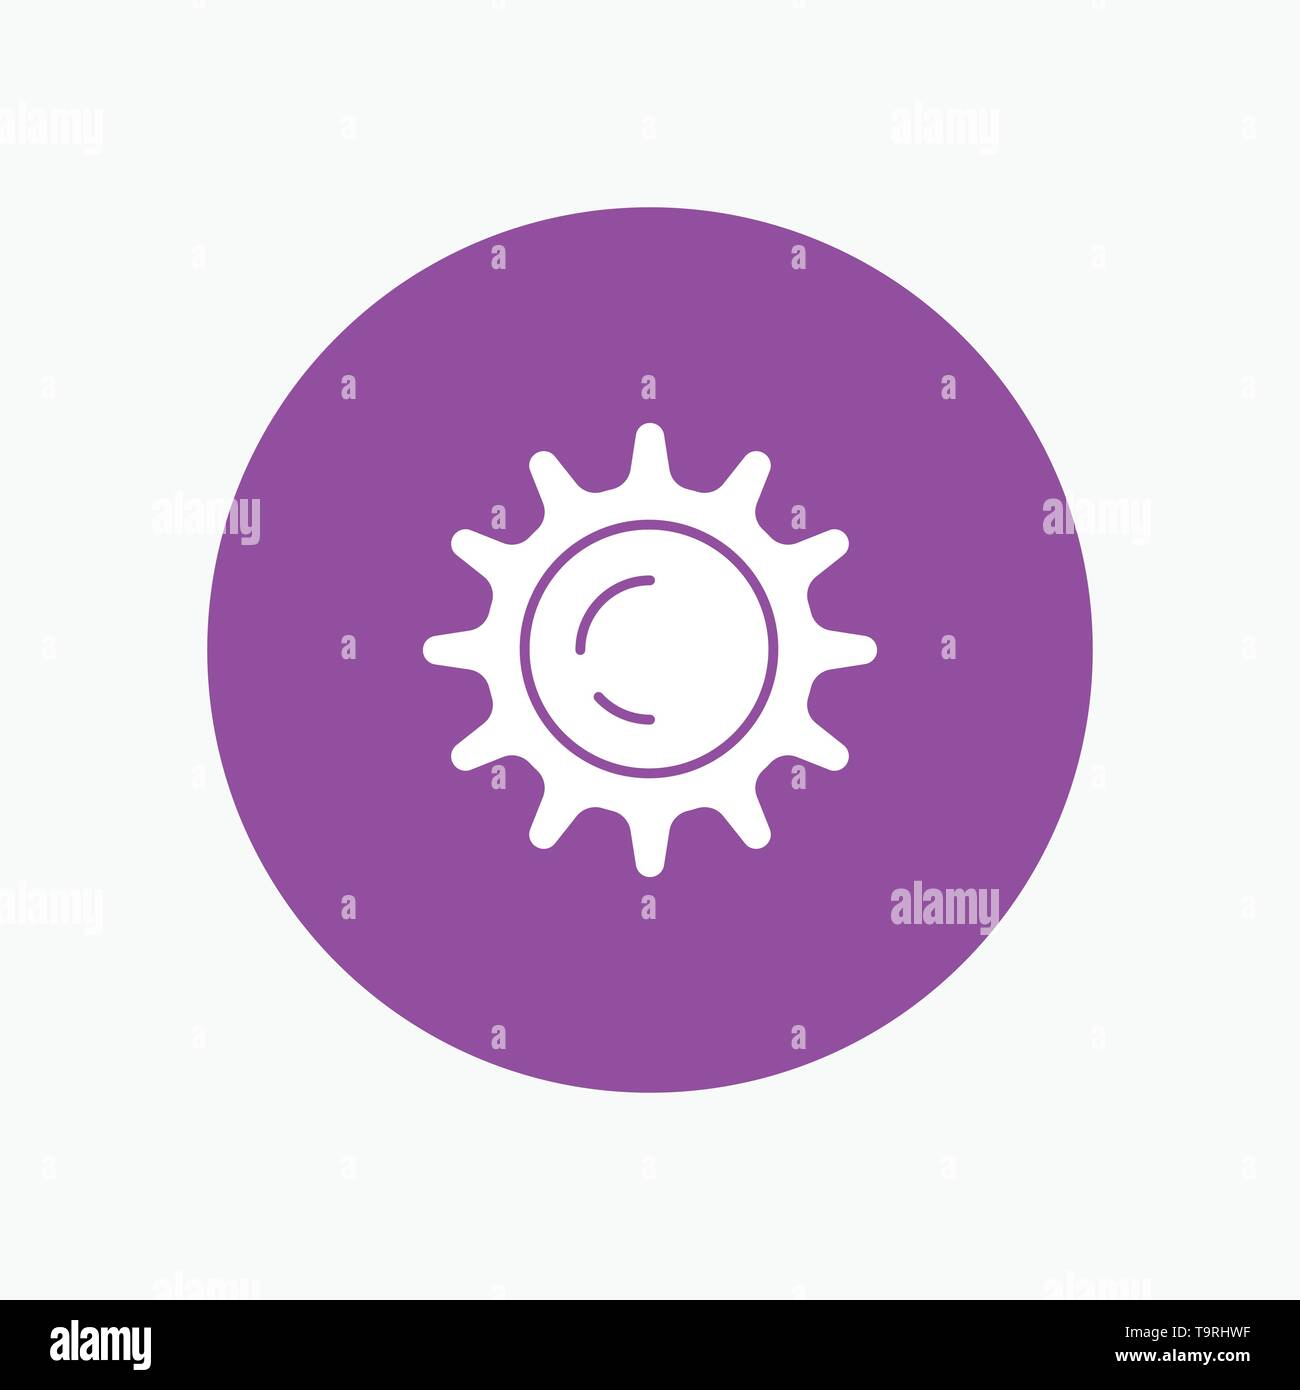 Sun, Day, Light - Stock Image